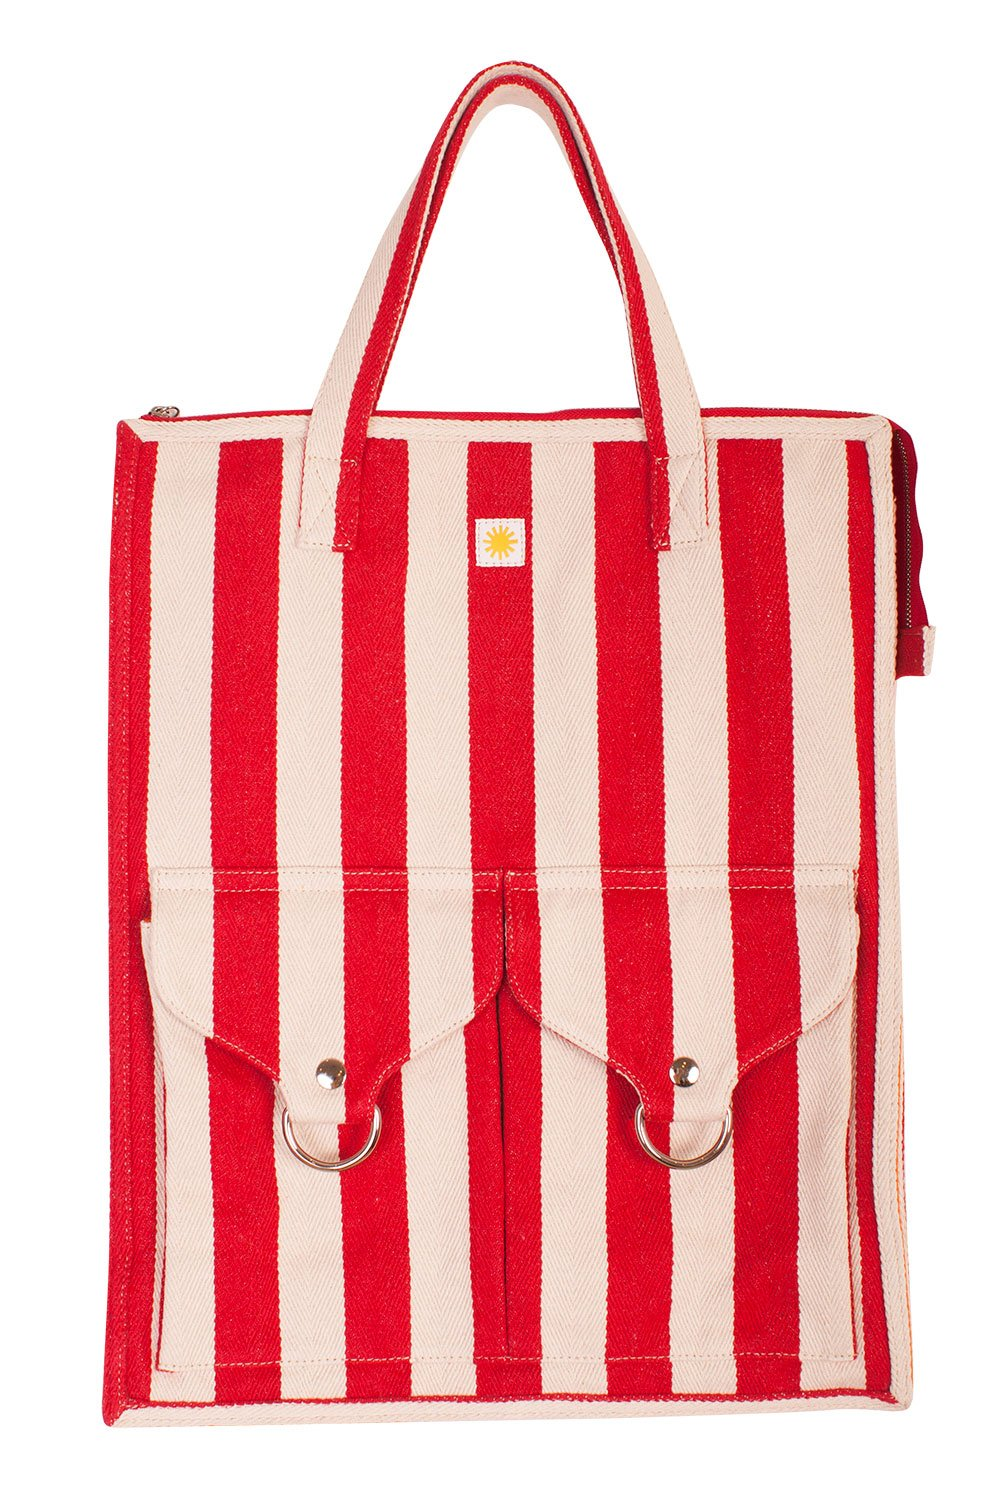 LF MARKEY STRIPED BEACH BAG